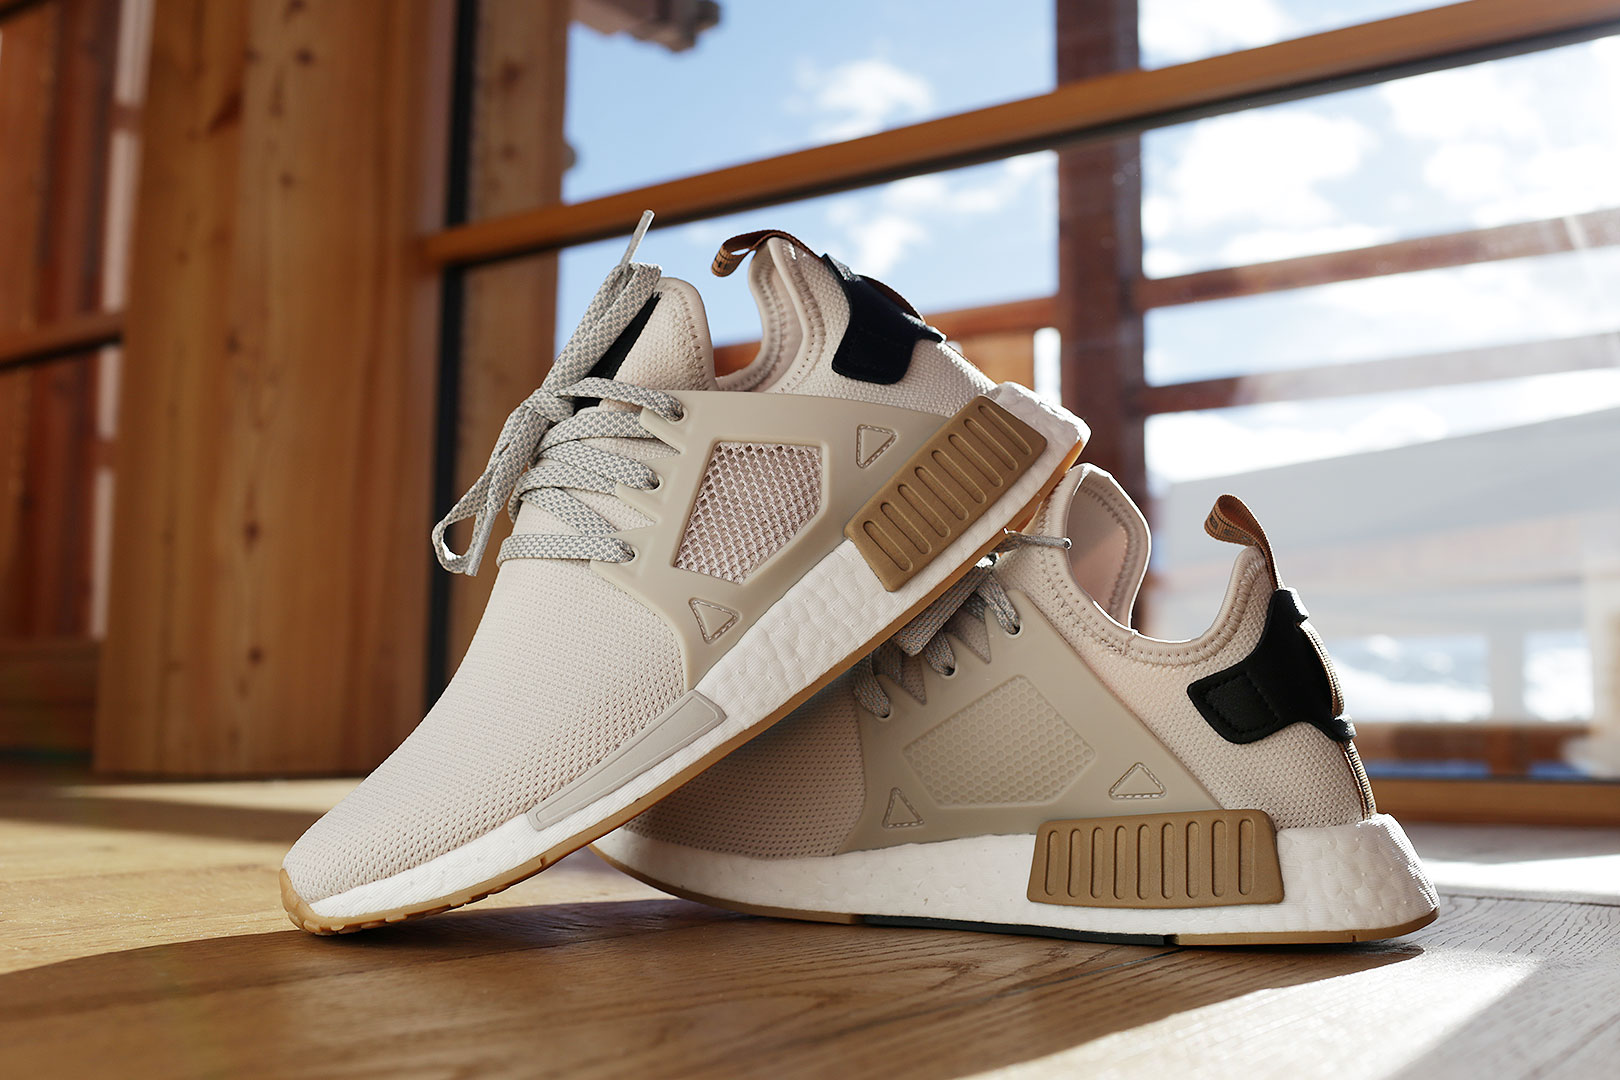 Die Warm Winter Sneaker adidas NMD XR1